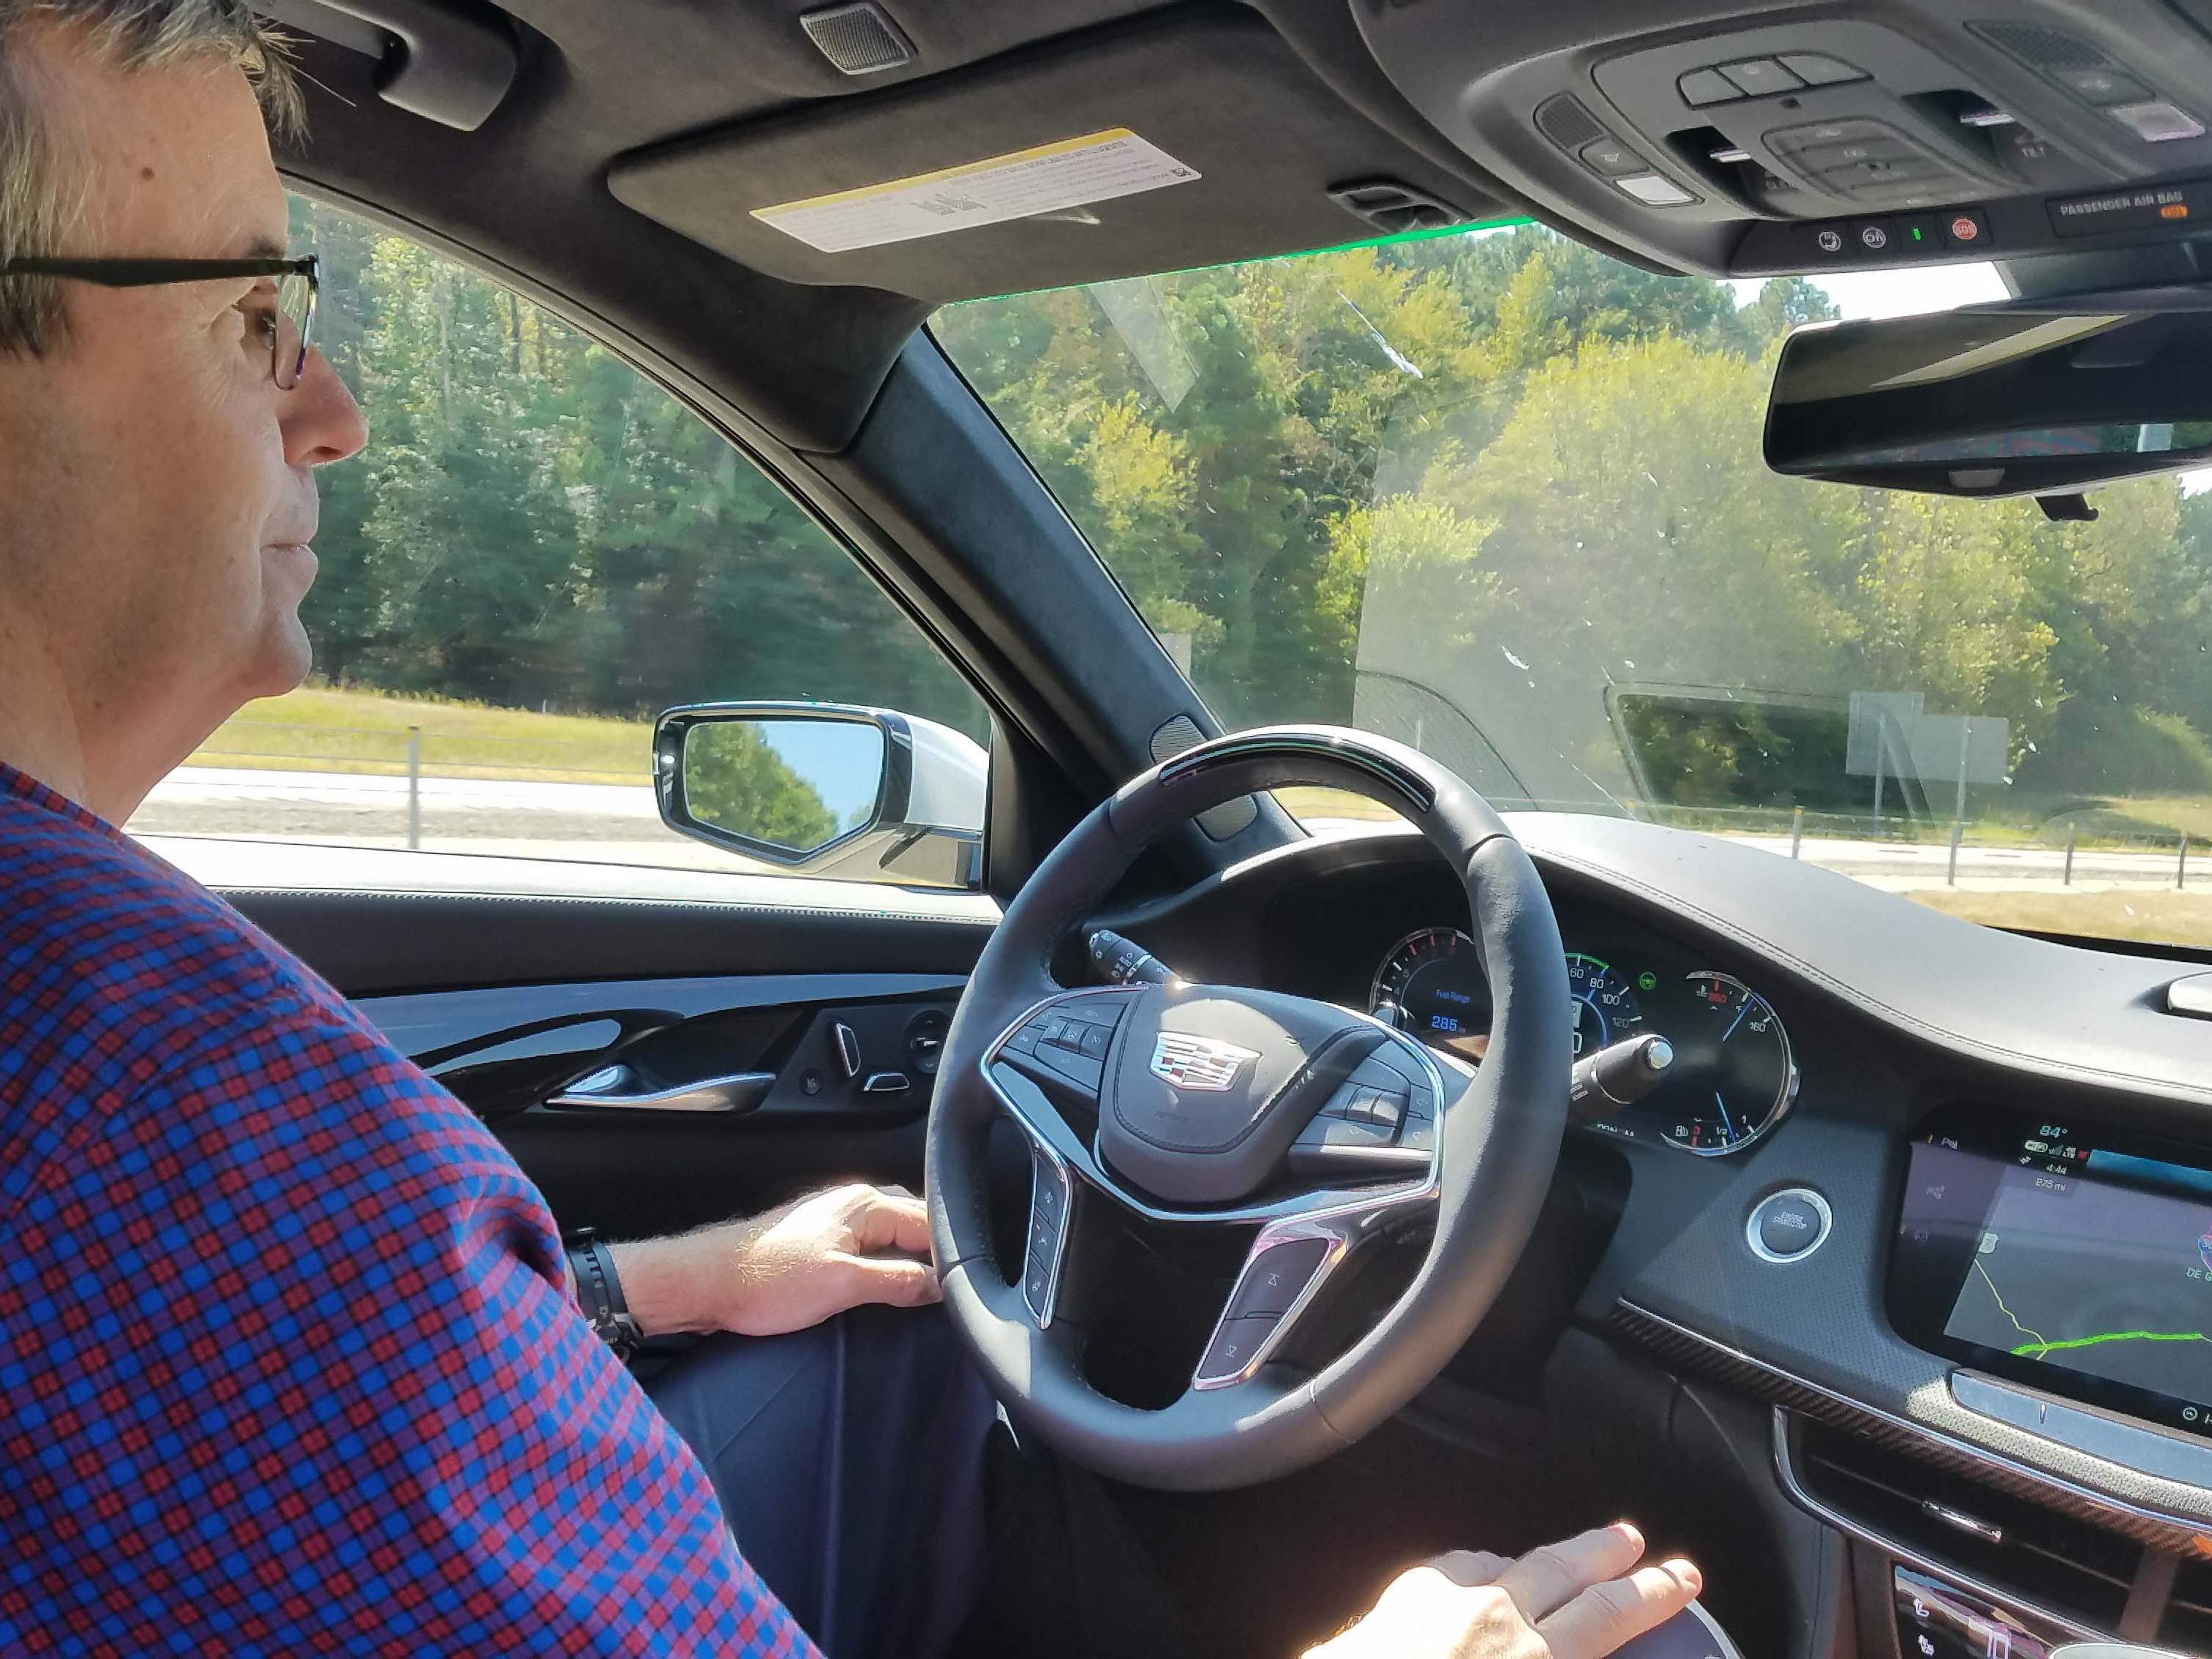 With Cadillac SuperCruise activated, Detroit News auto critic Henry Payne drives hands free at 80 mph on I-30 outside of Texarkana, Arkansas.